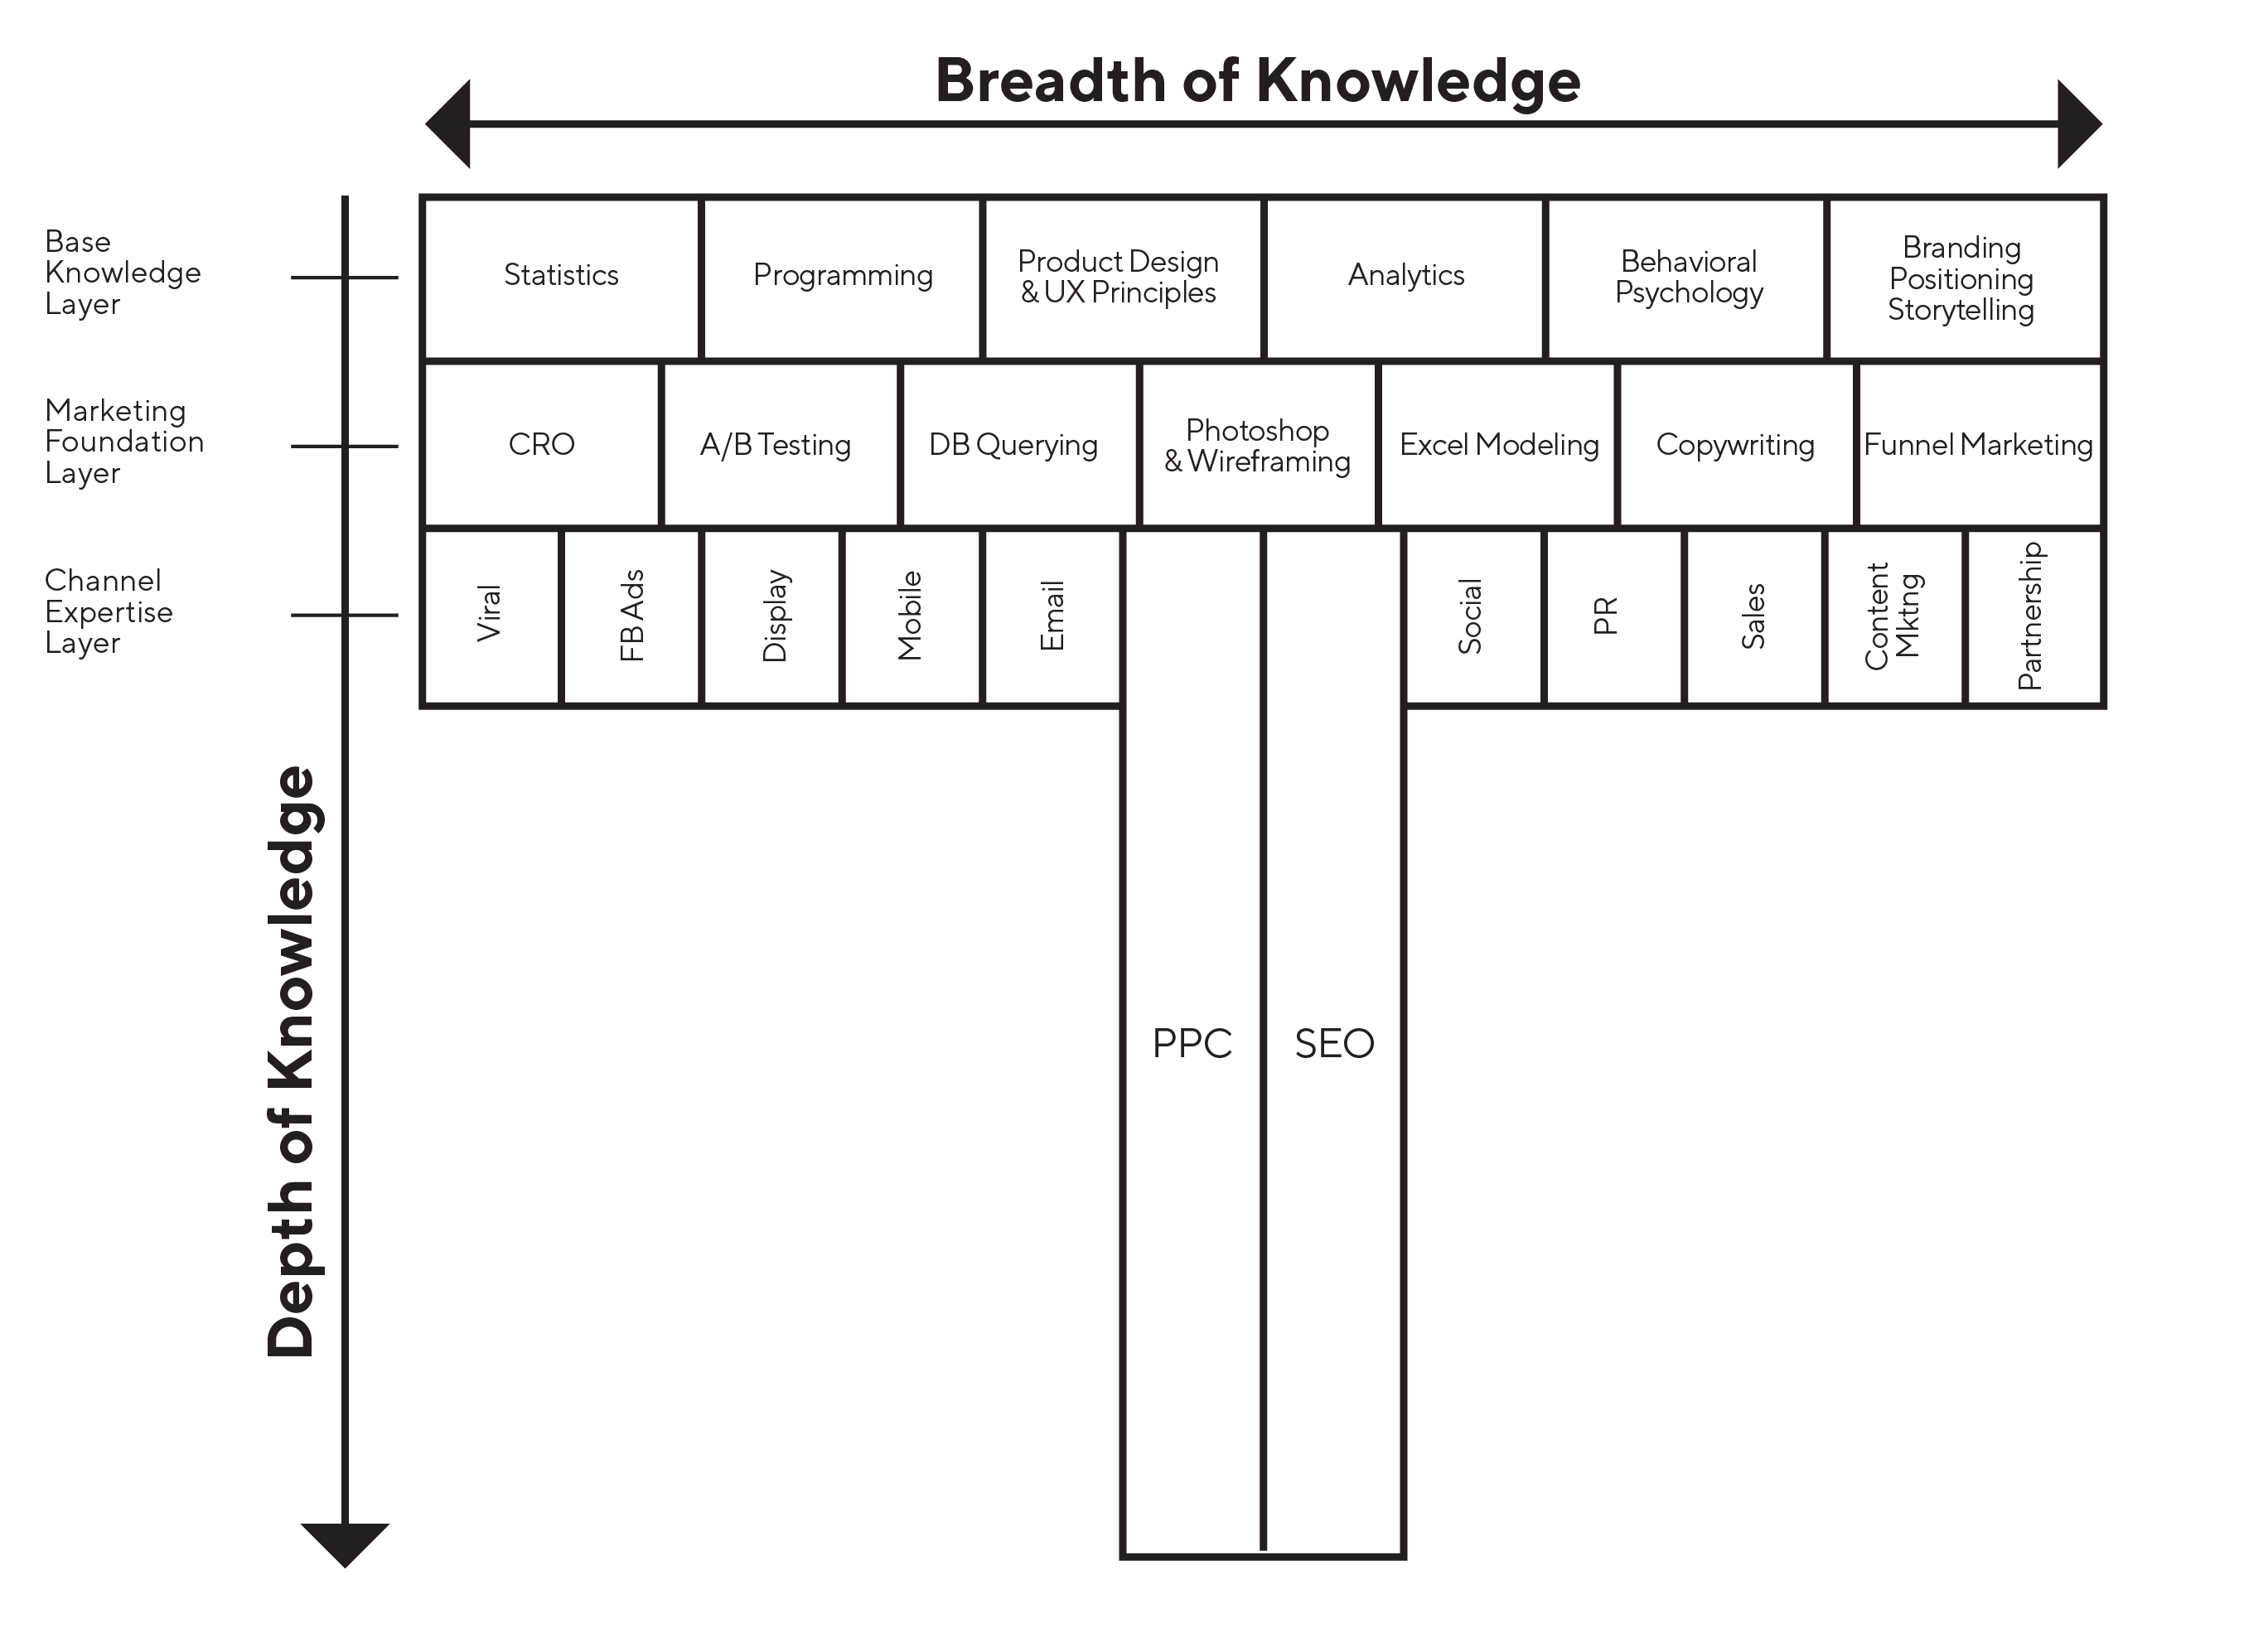 chart of the different layers of knowledge and skill applicable to customer acquisition marketing